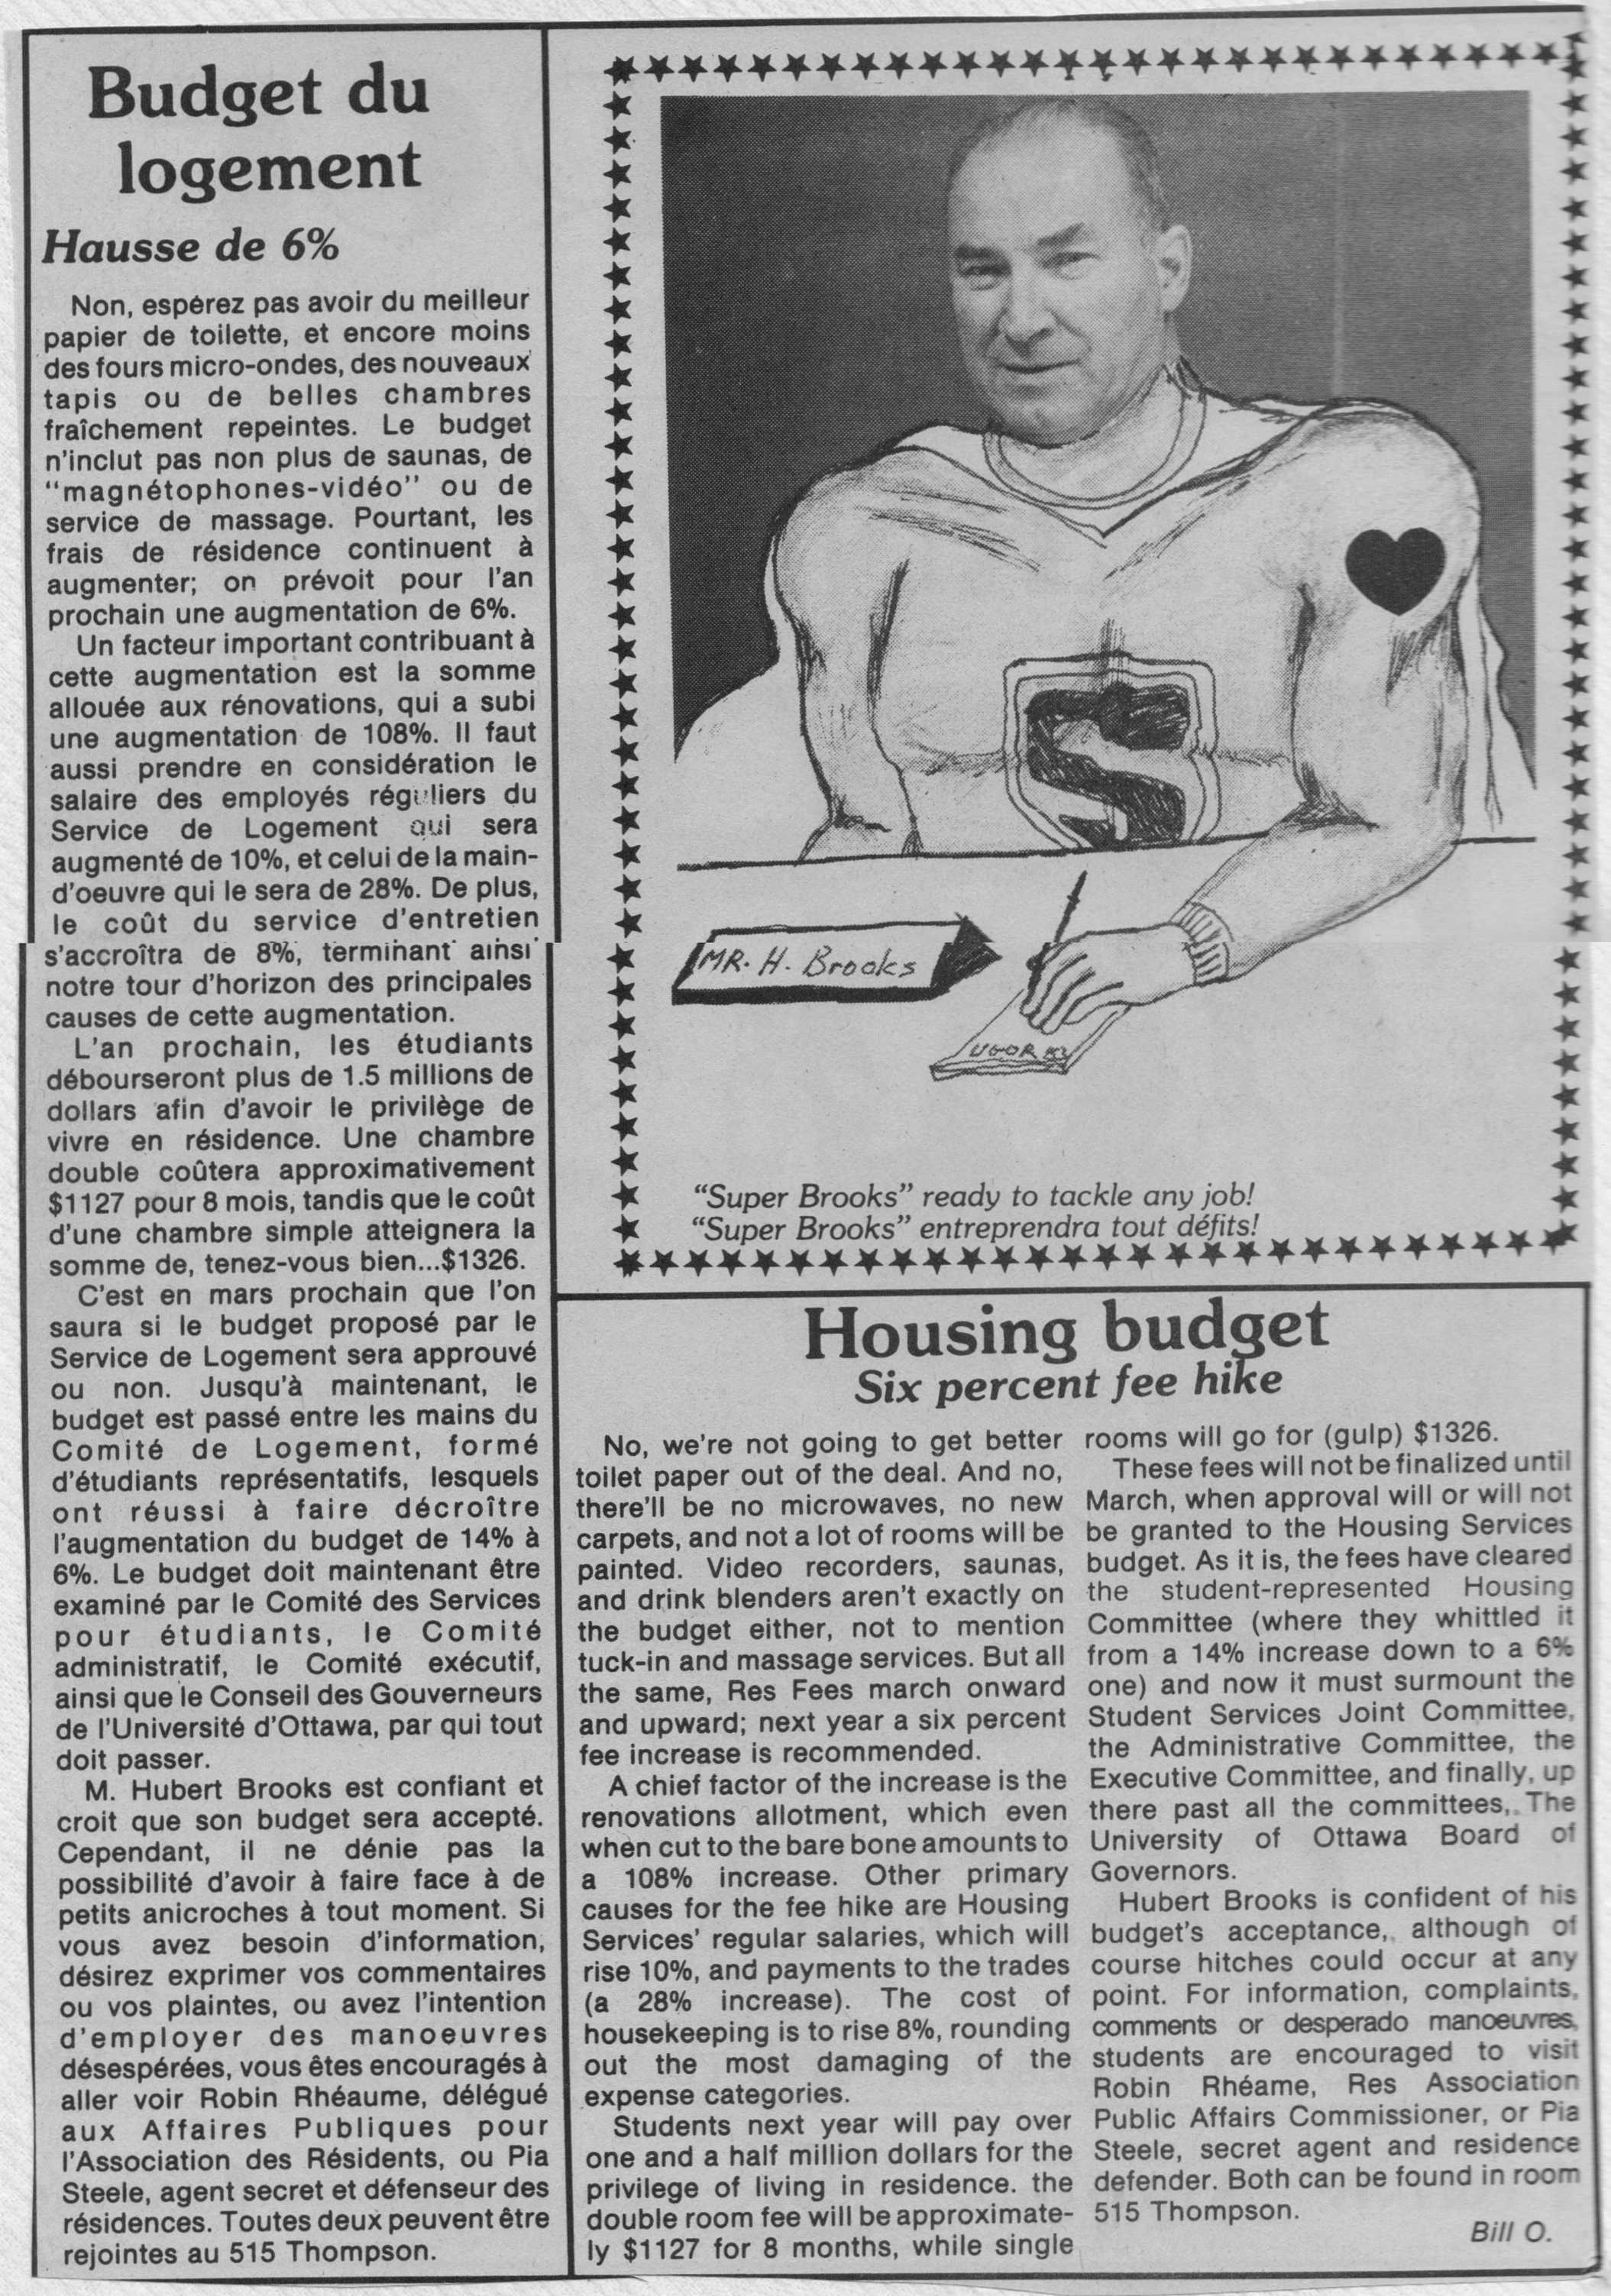 Photo: Univ of Ottawa newsarticle on Housing Budget and Super Brooks